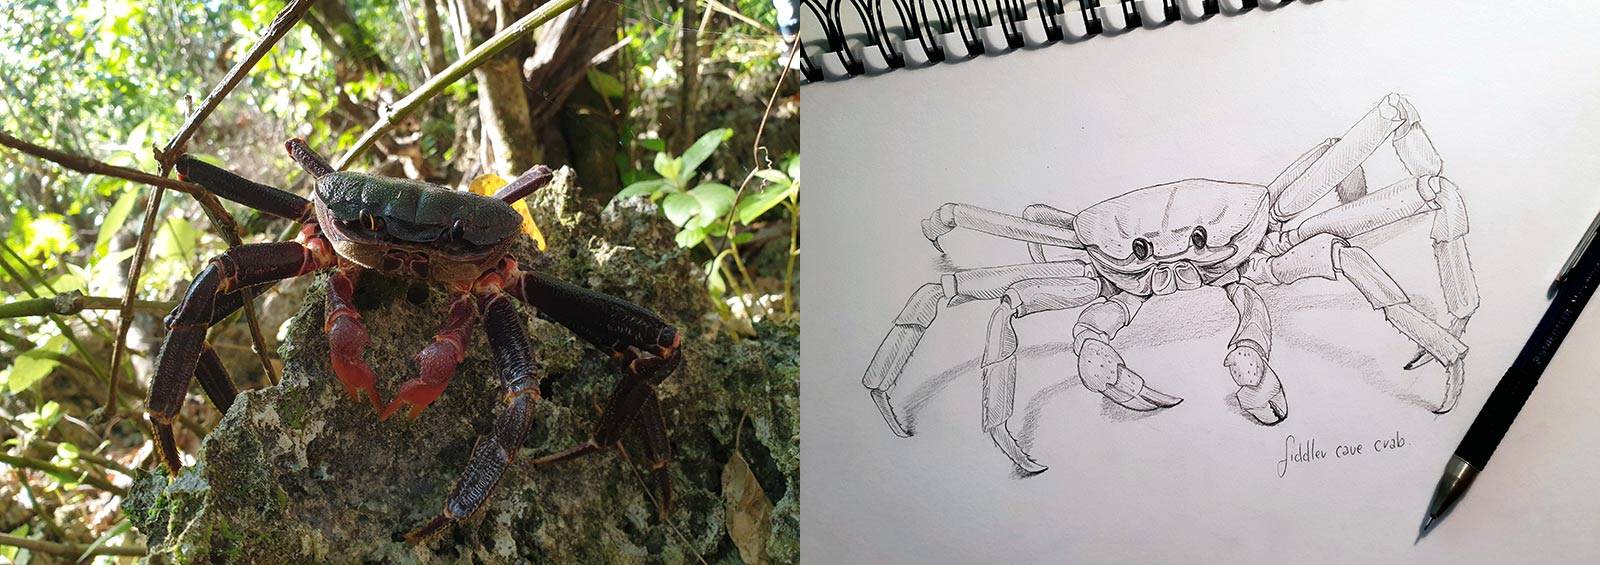 Nikki Pierce's photo of a crab and her sketch of the same critter